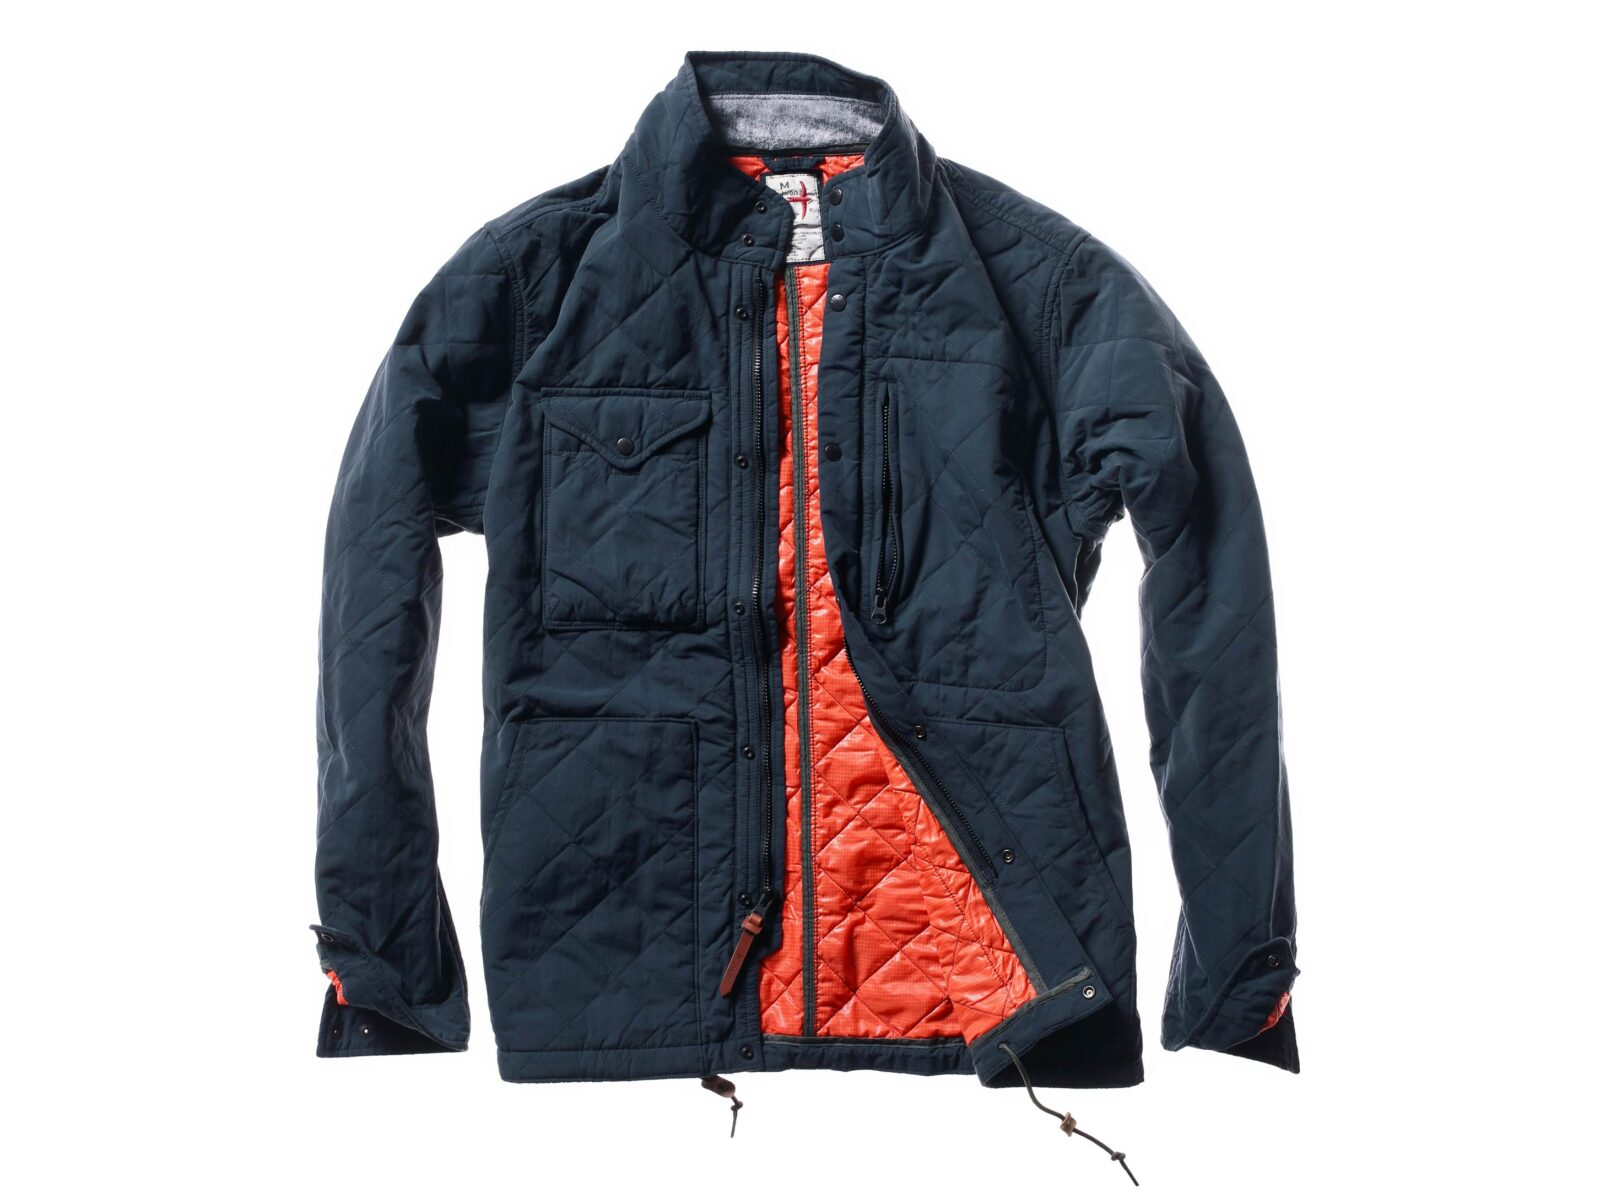 The Relwen Quilted Tanker Jacket